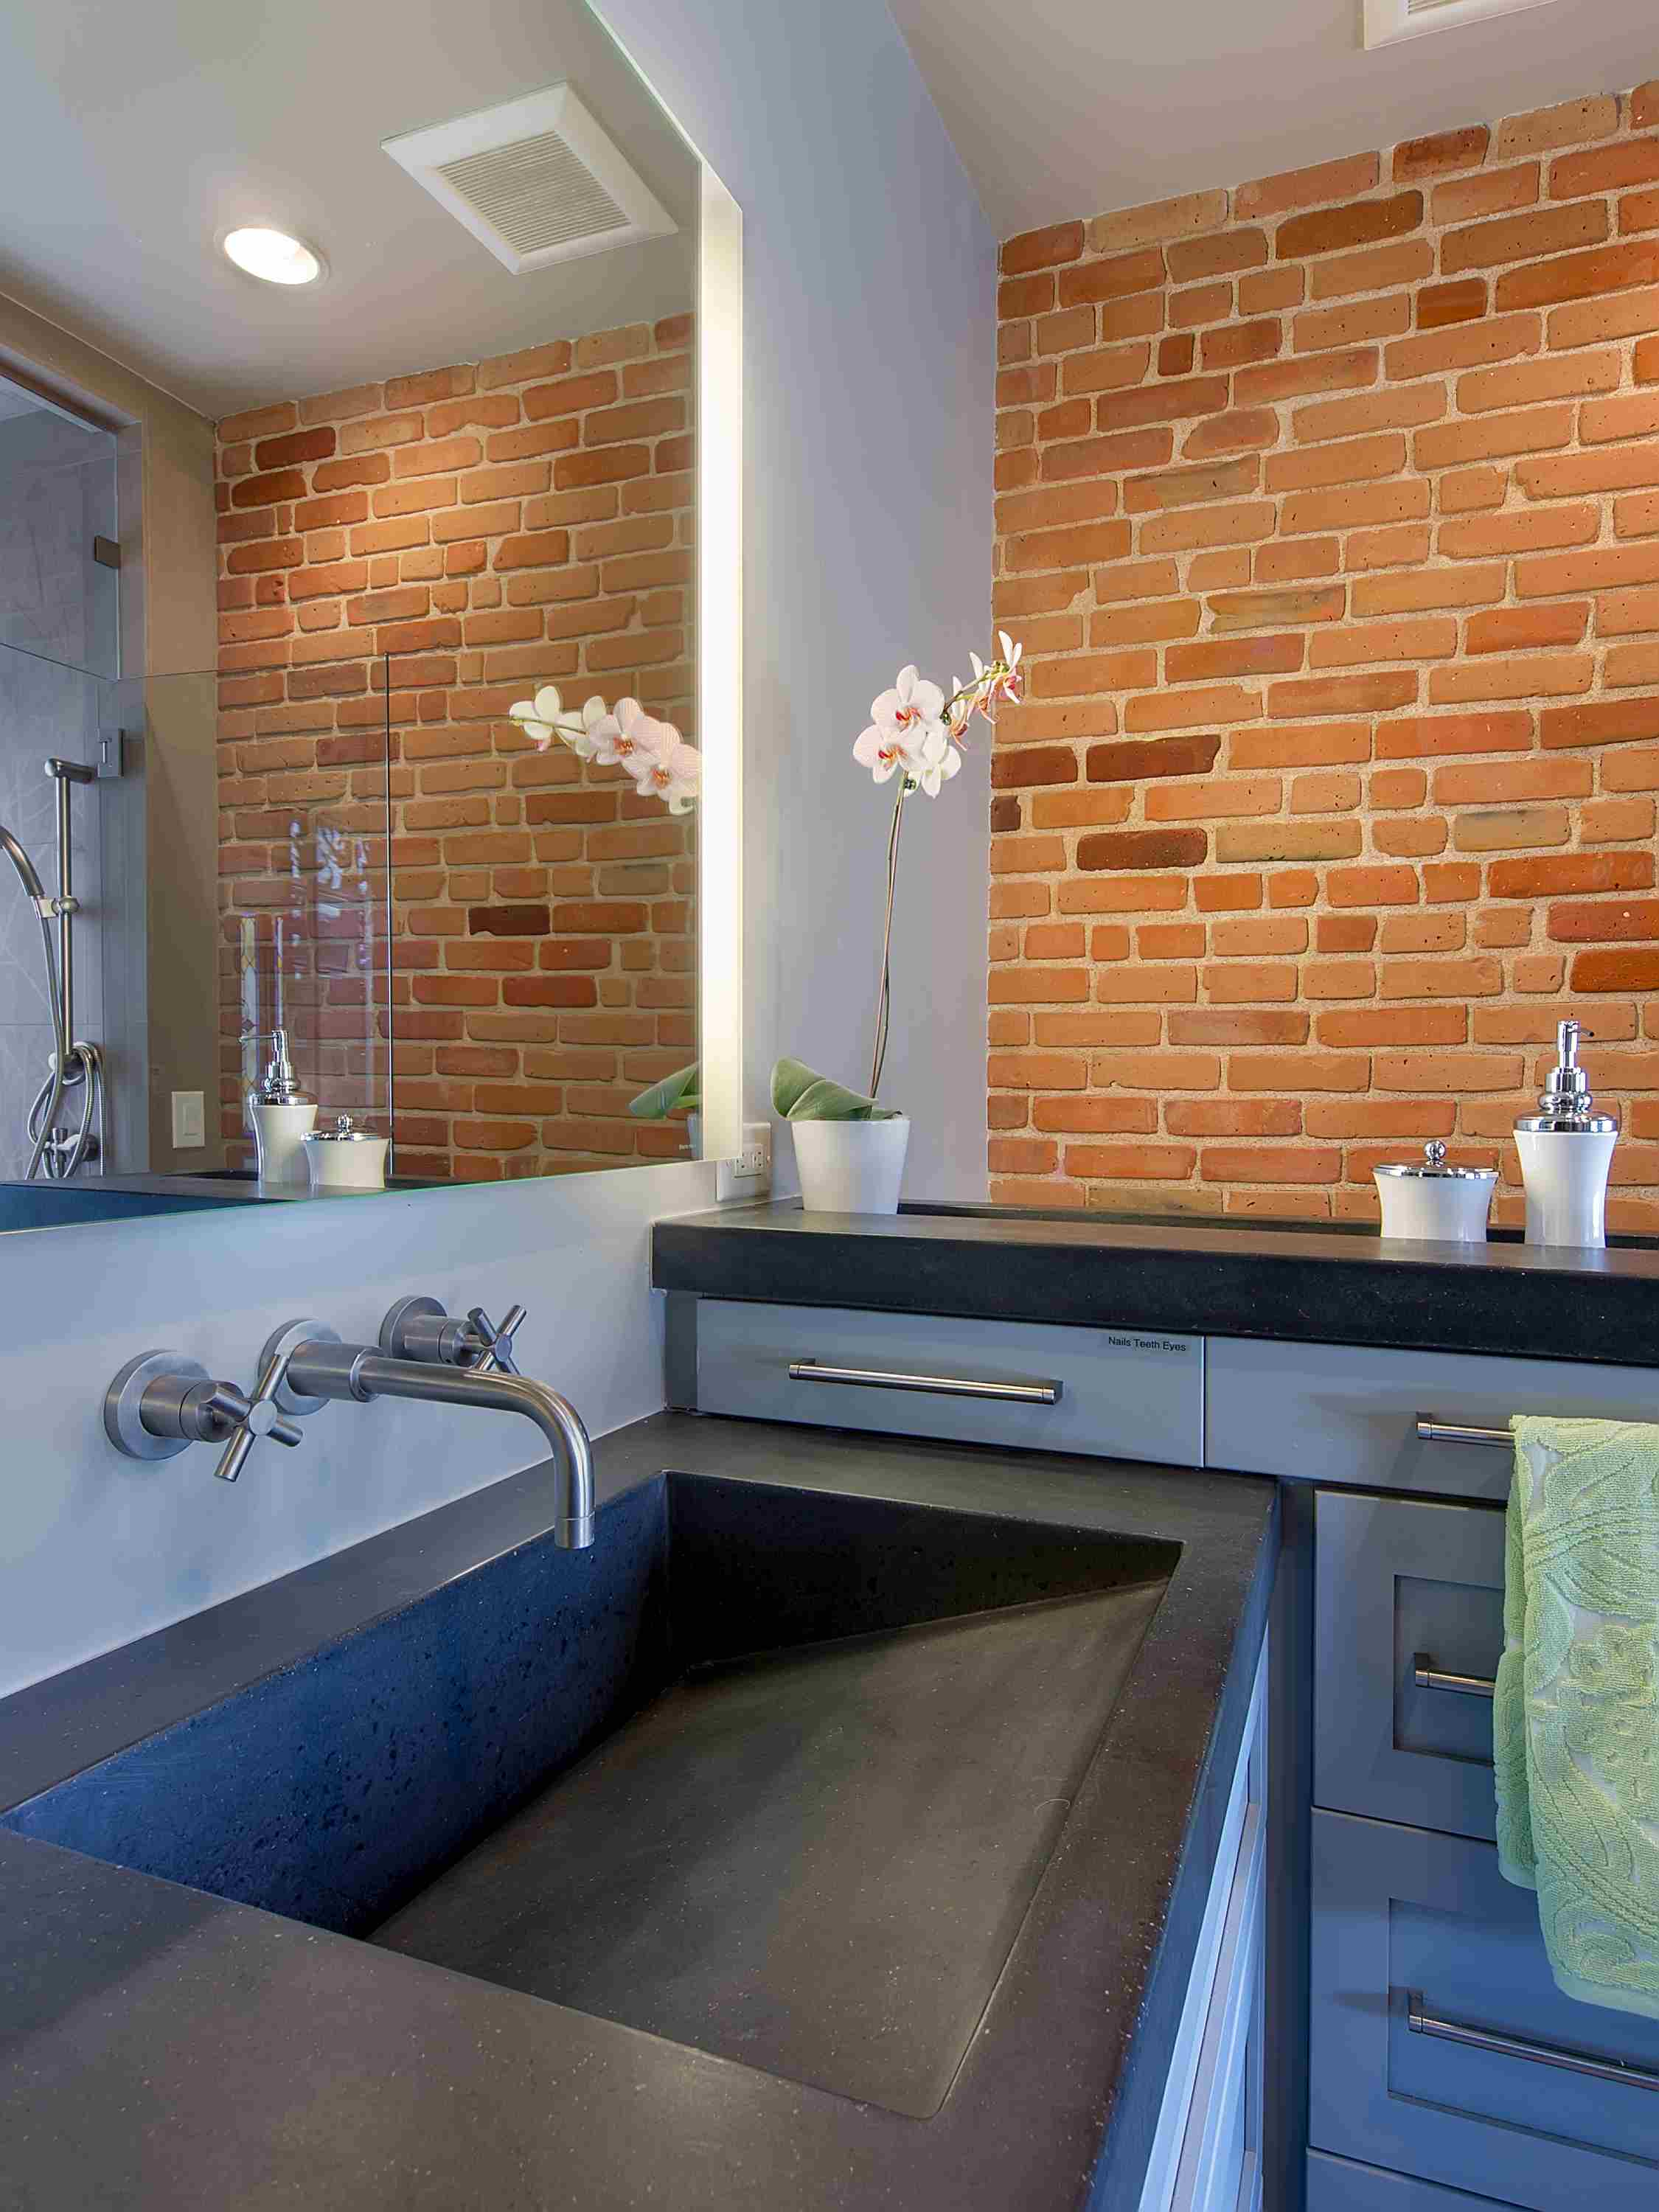 exposed brick and concrete — sanctuary kitchen and bath desi-3.jpg